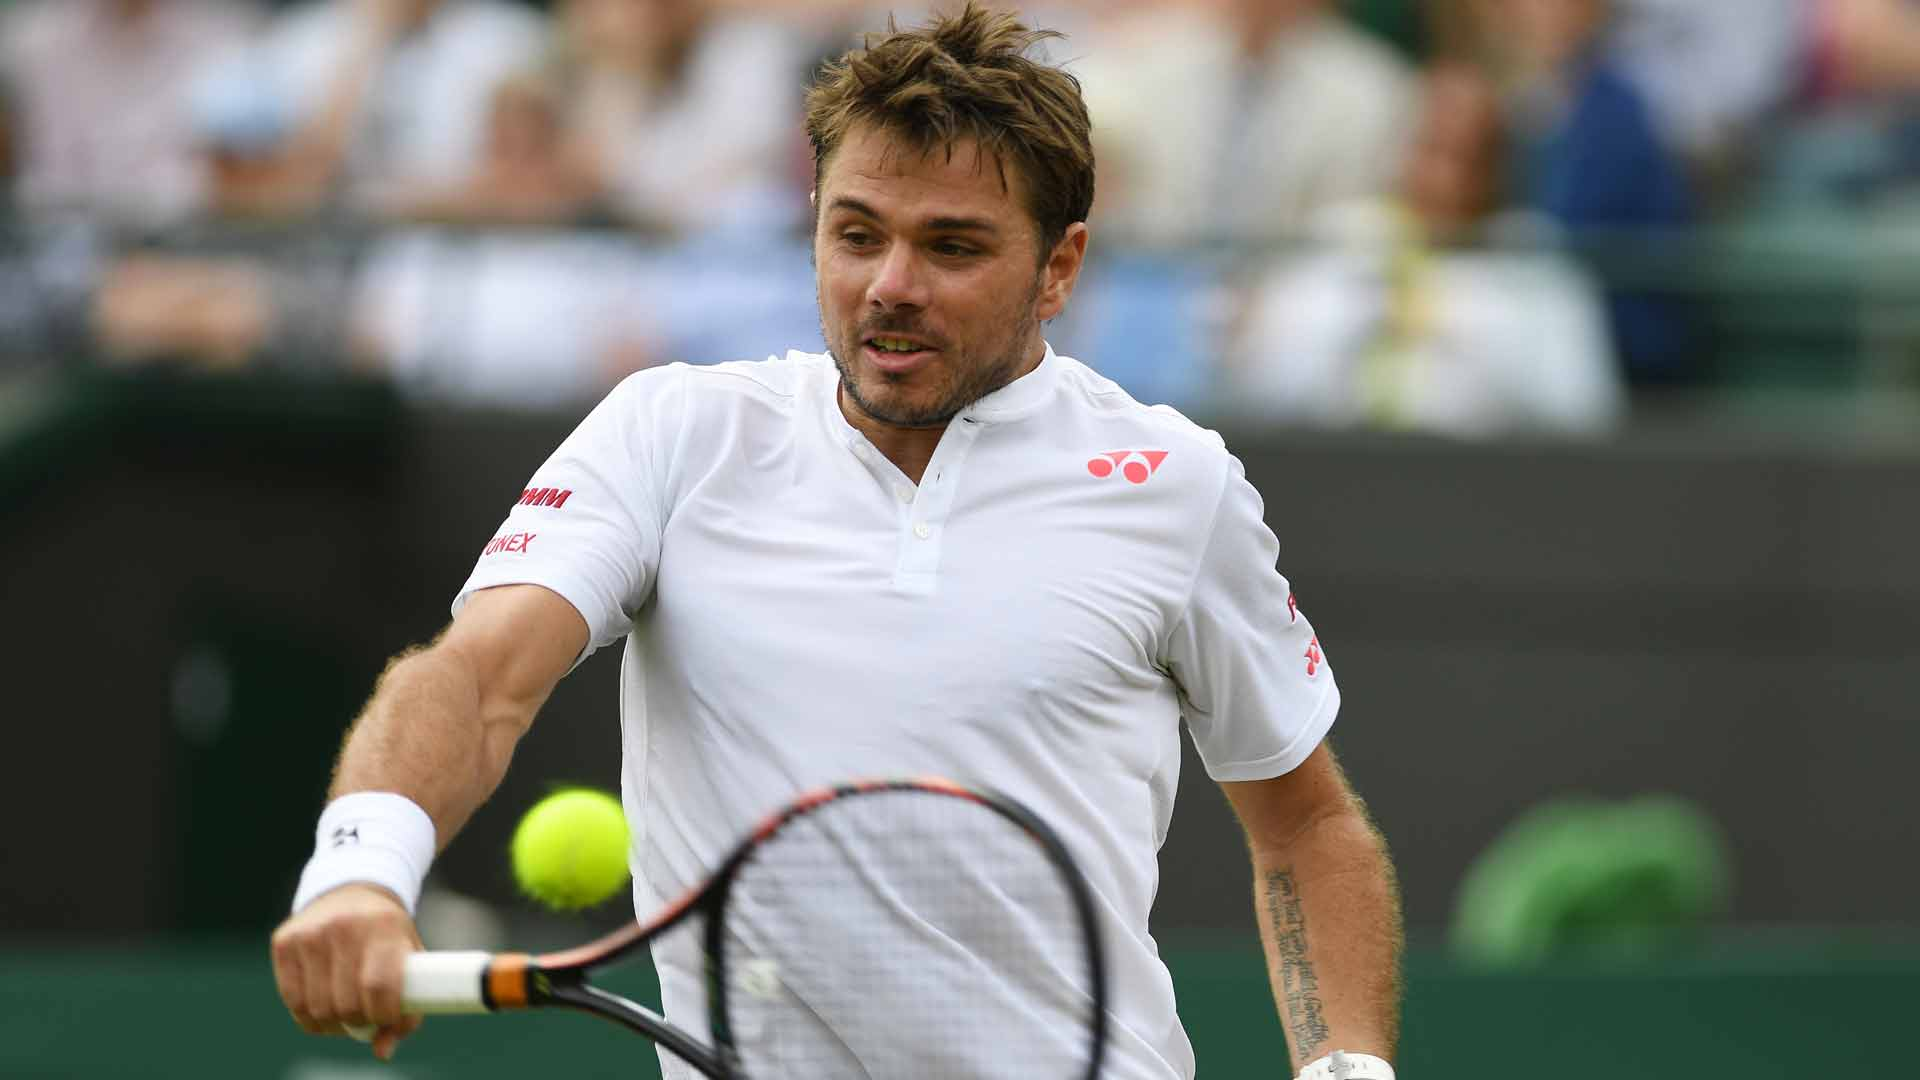 Stan Wawrinka reflects on a tough opening round and another difficult test to come at Wimbledon.